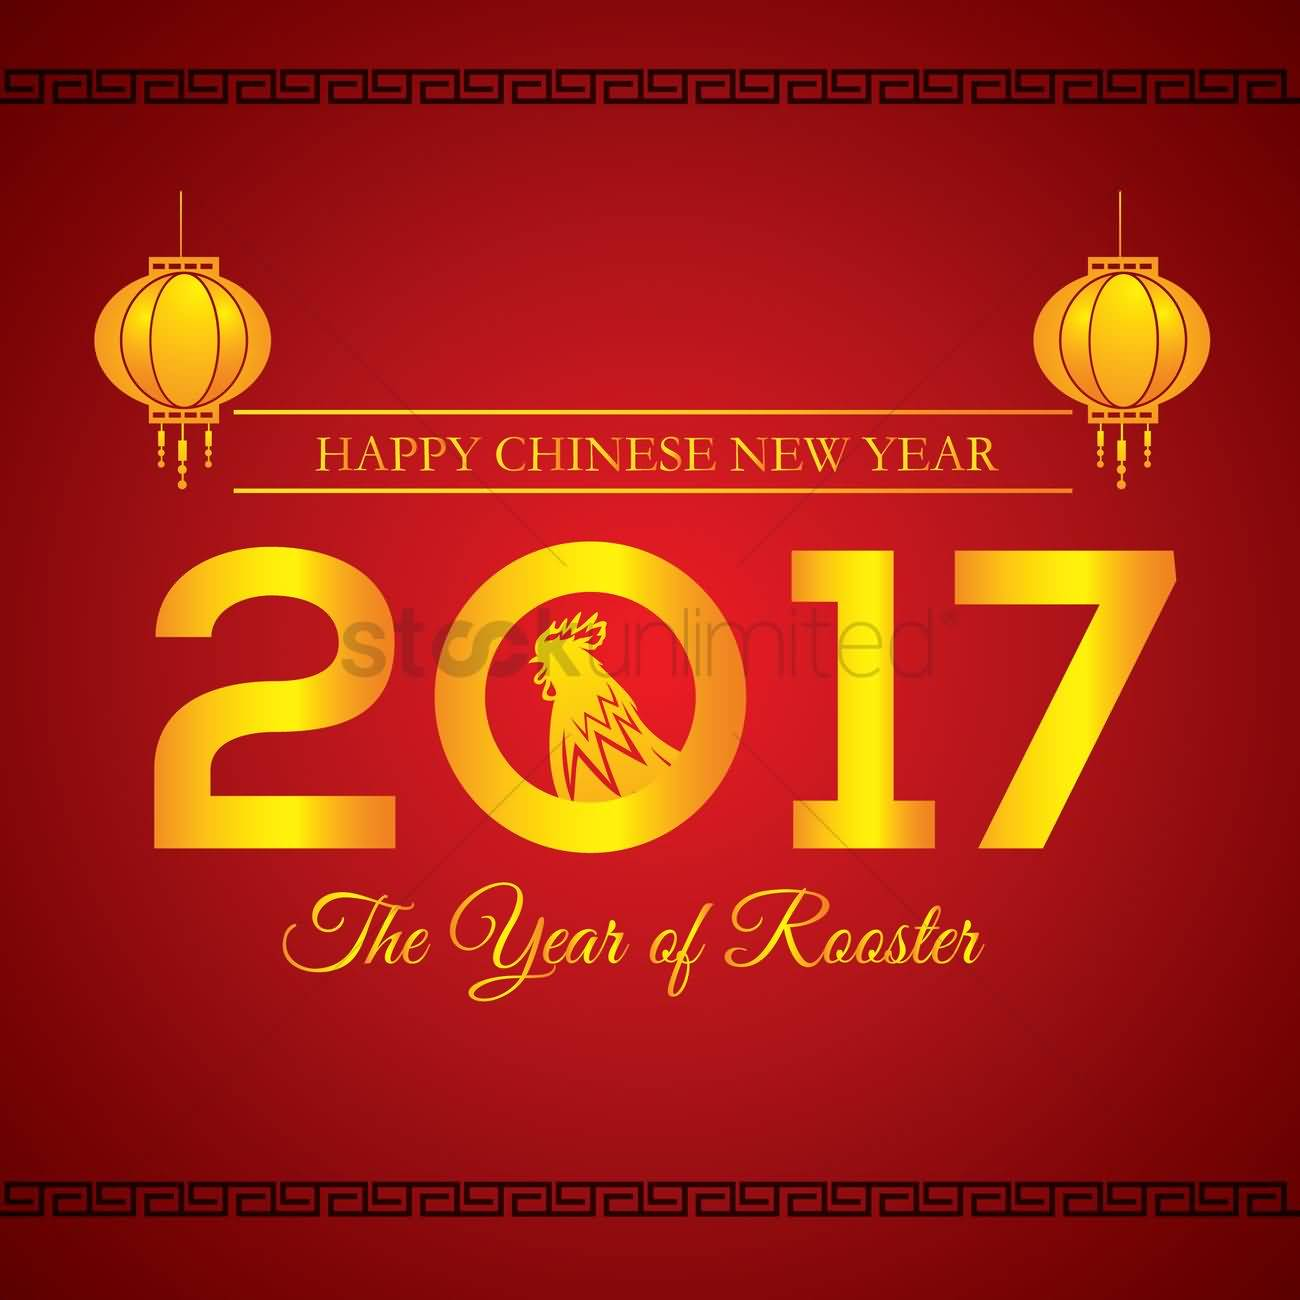 50 happy chinese new year 2017 wish pictures and photos happy chinese new year 2017 the year of rooster greeting card m4hsunfo